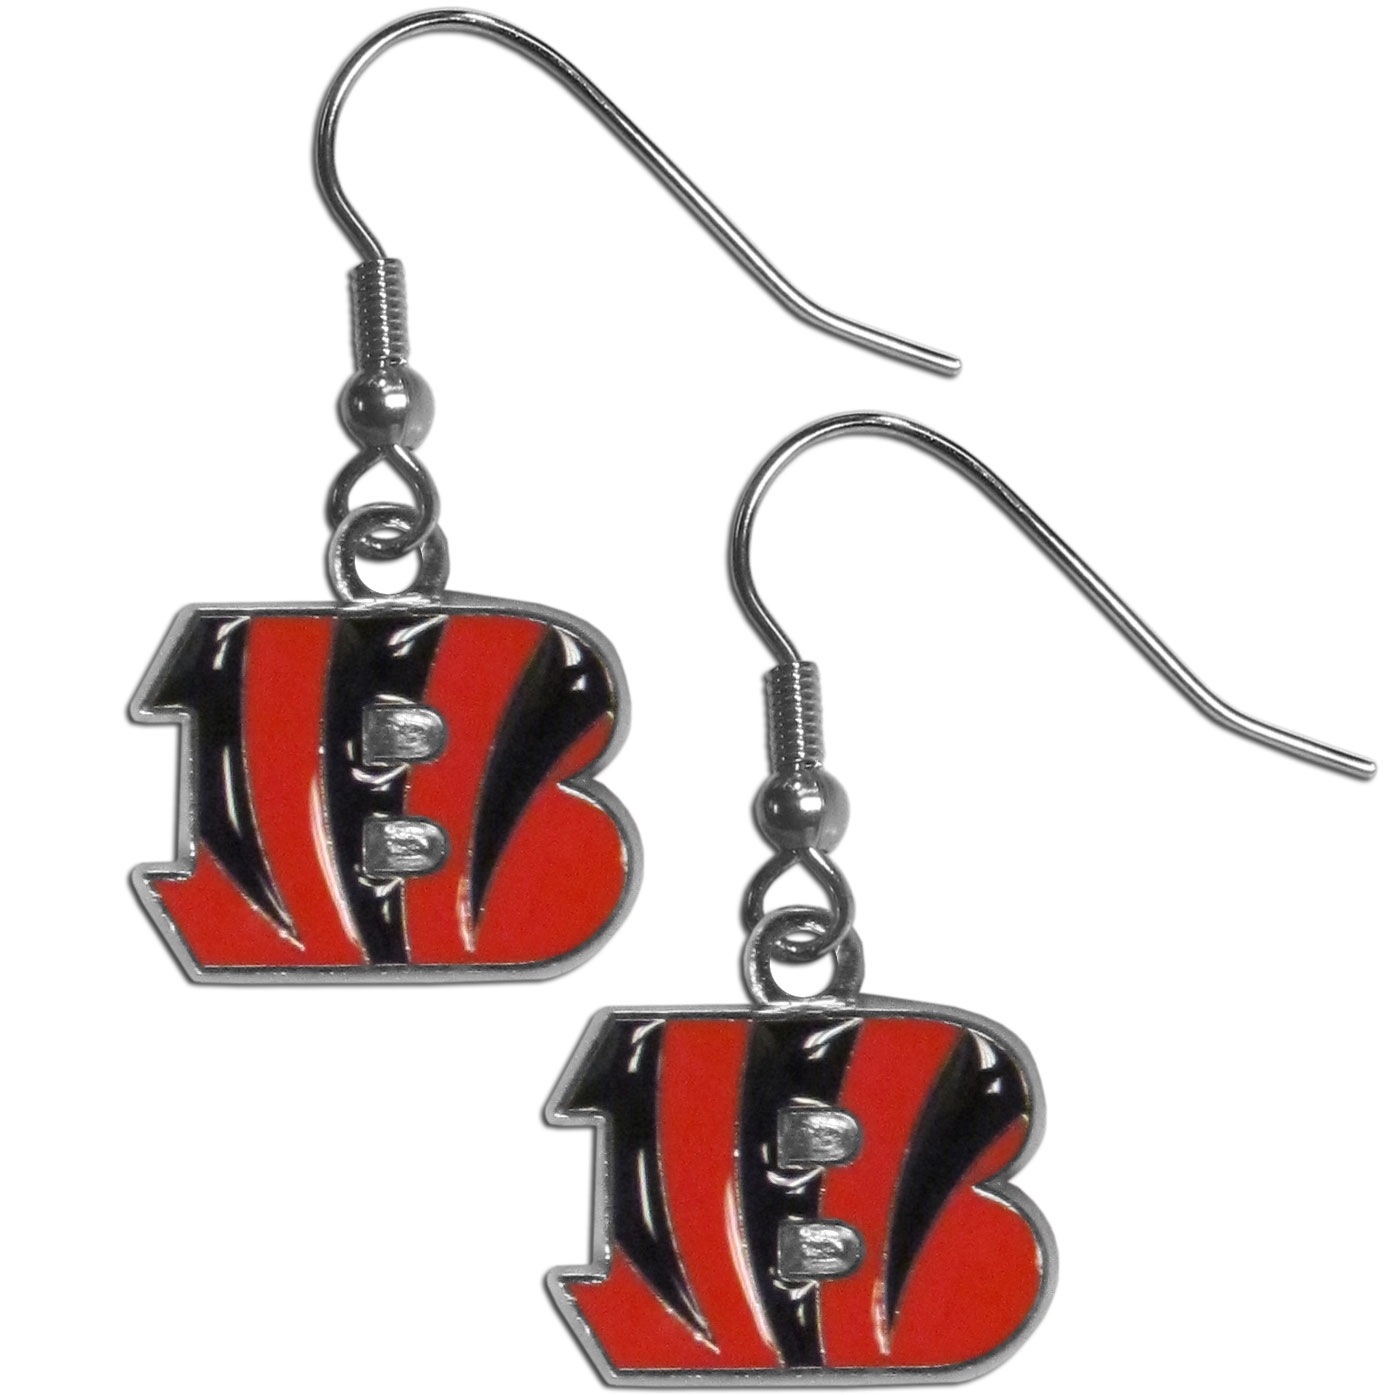 Cincinnati Bengals Chrome Dangle Earrings - Officially licensed NFL Cincinnati Bengals dangle earrings have fully cast Cincinnati Bengals charms with exceptional detail and a hand enameled finish. The Cincinnati Bengals earrings have a high polish nickel free chrome finish and hypoallergenic fishhook posts. Officially licensed NFL product Licensee: Siskiyou Buckle .com